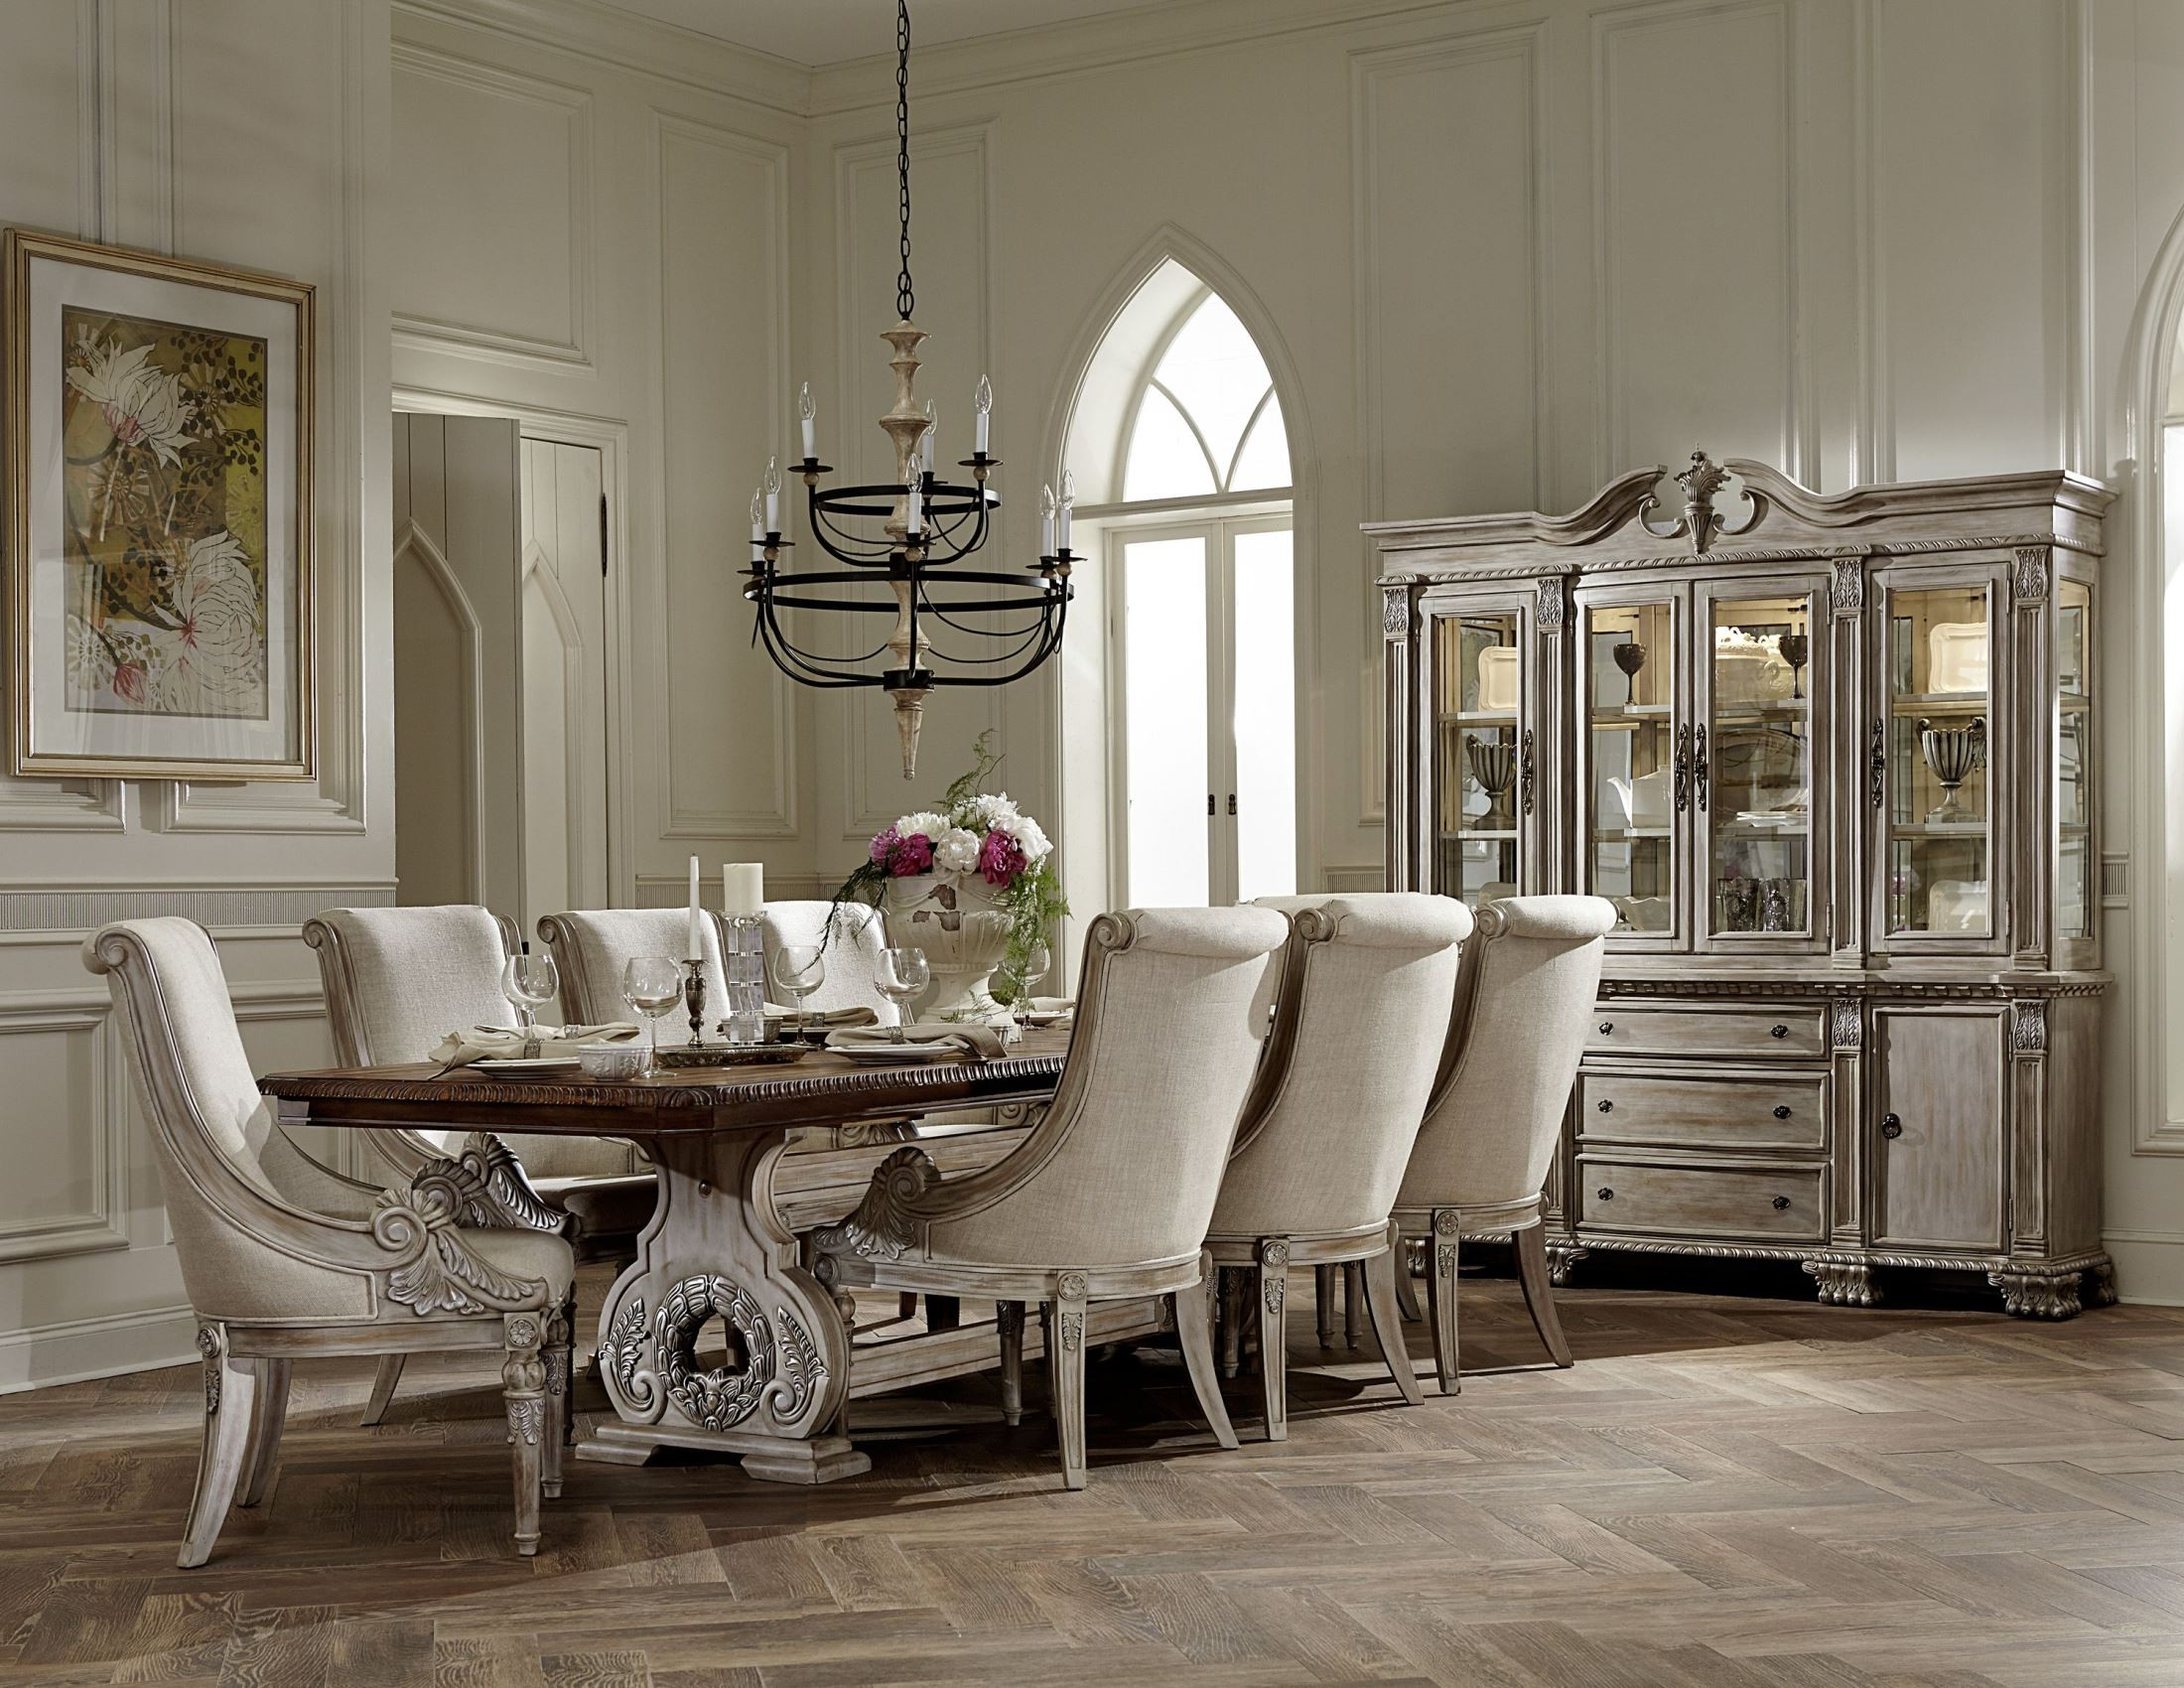 Gl Dining Room Set | Orleans Ii White Wash Extendable Trestle Dining Room Set From